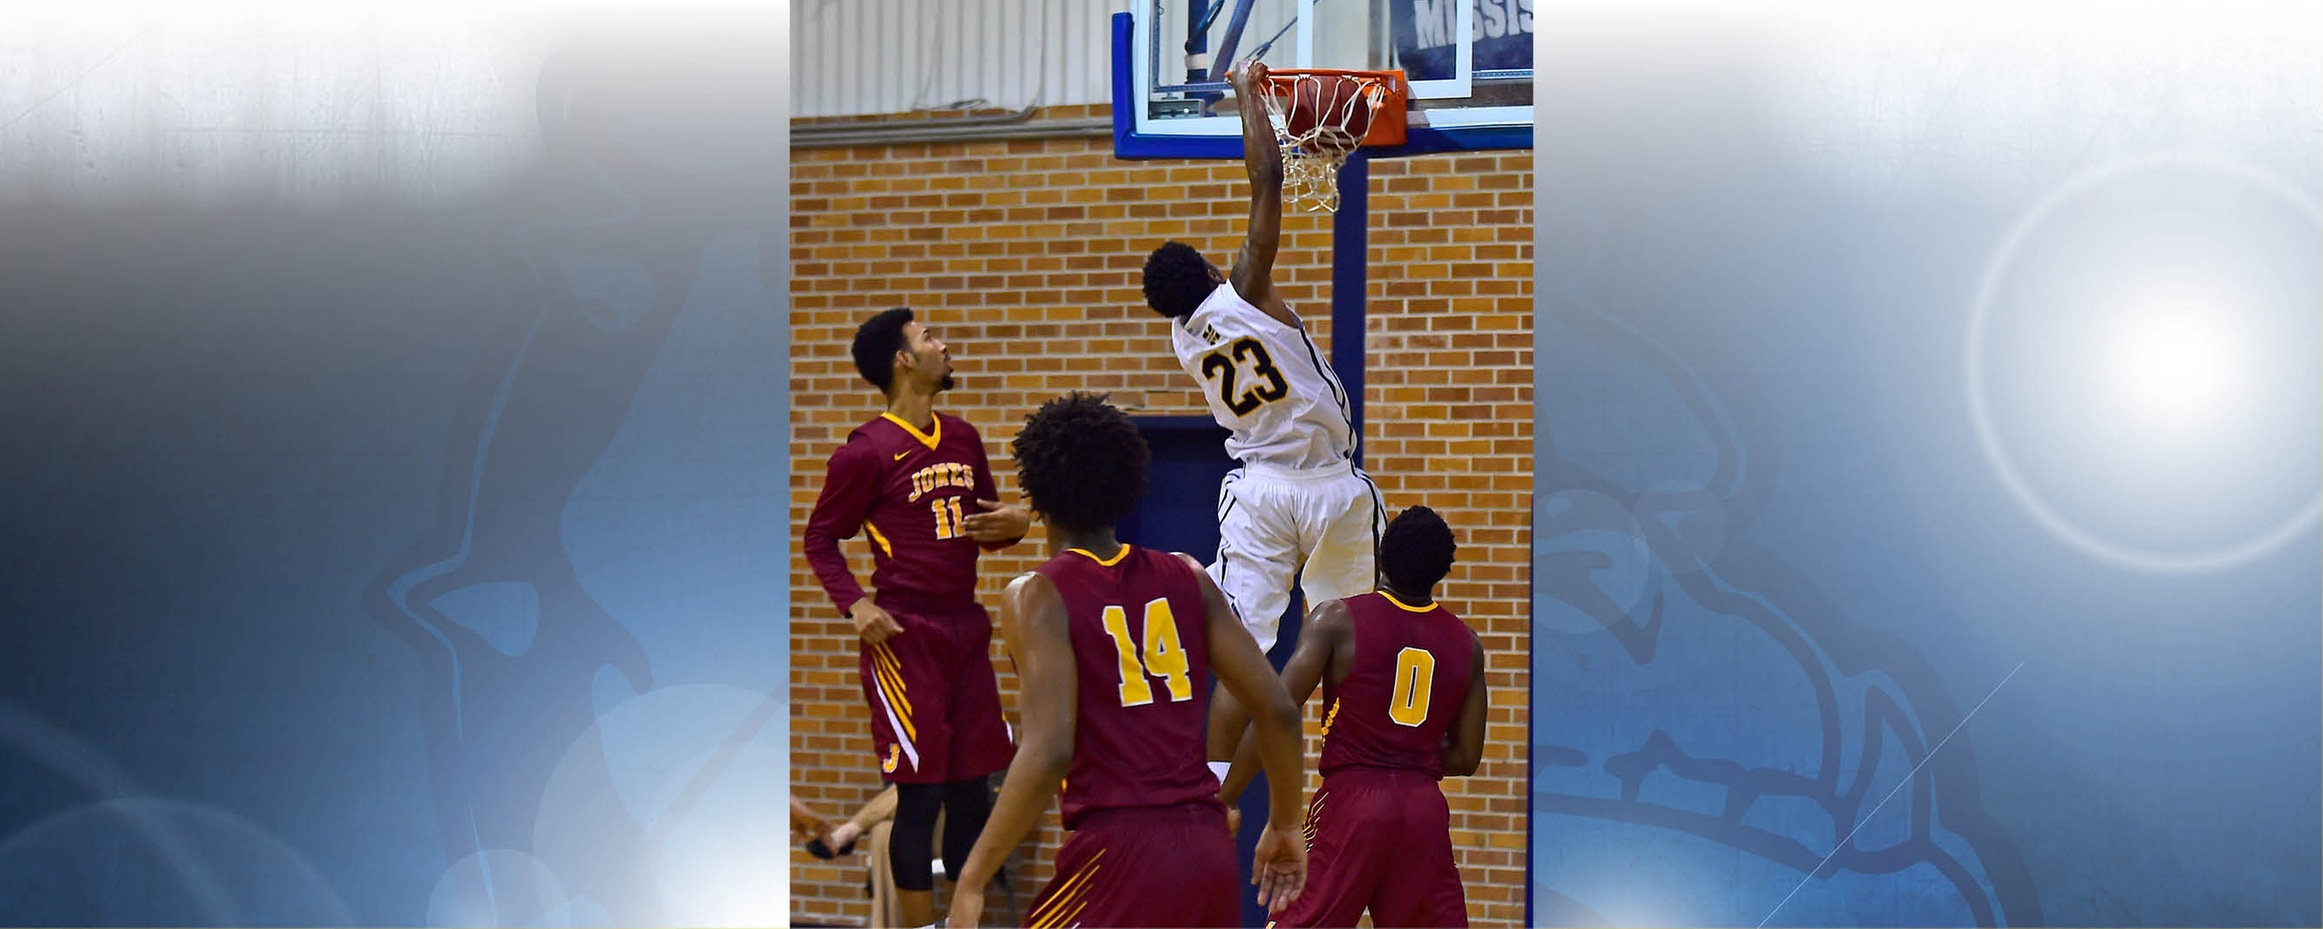 Gulf Coast loses in last minute to No. 9 JCJC